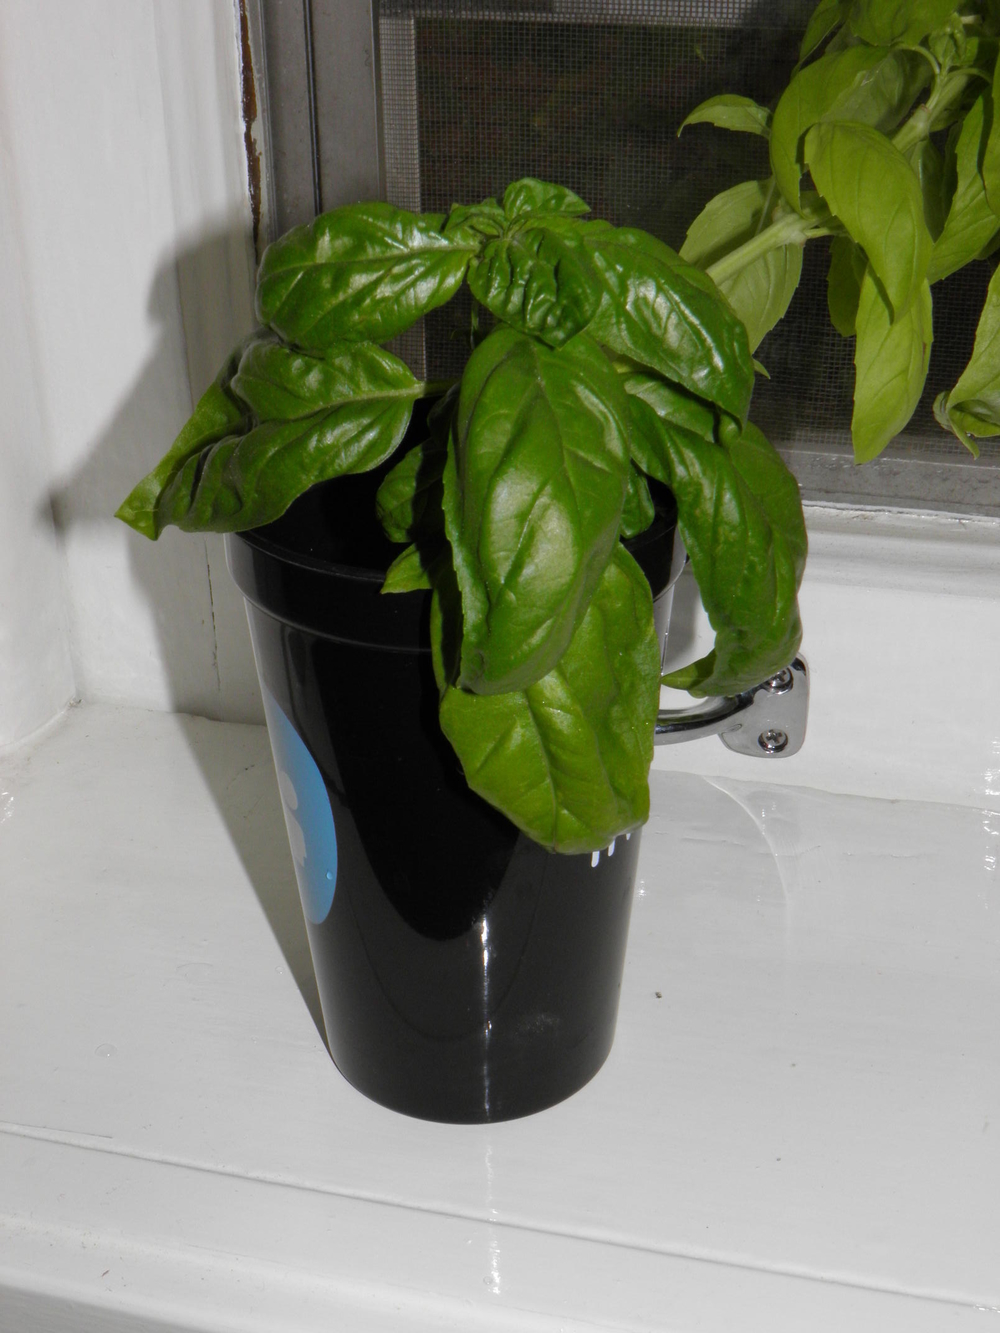 Rooting Basil in a Glass of Water